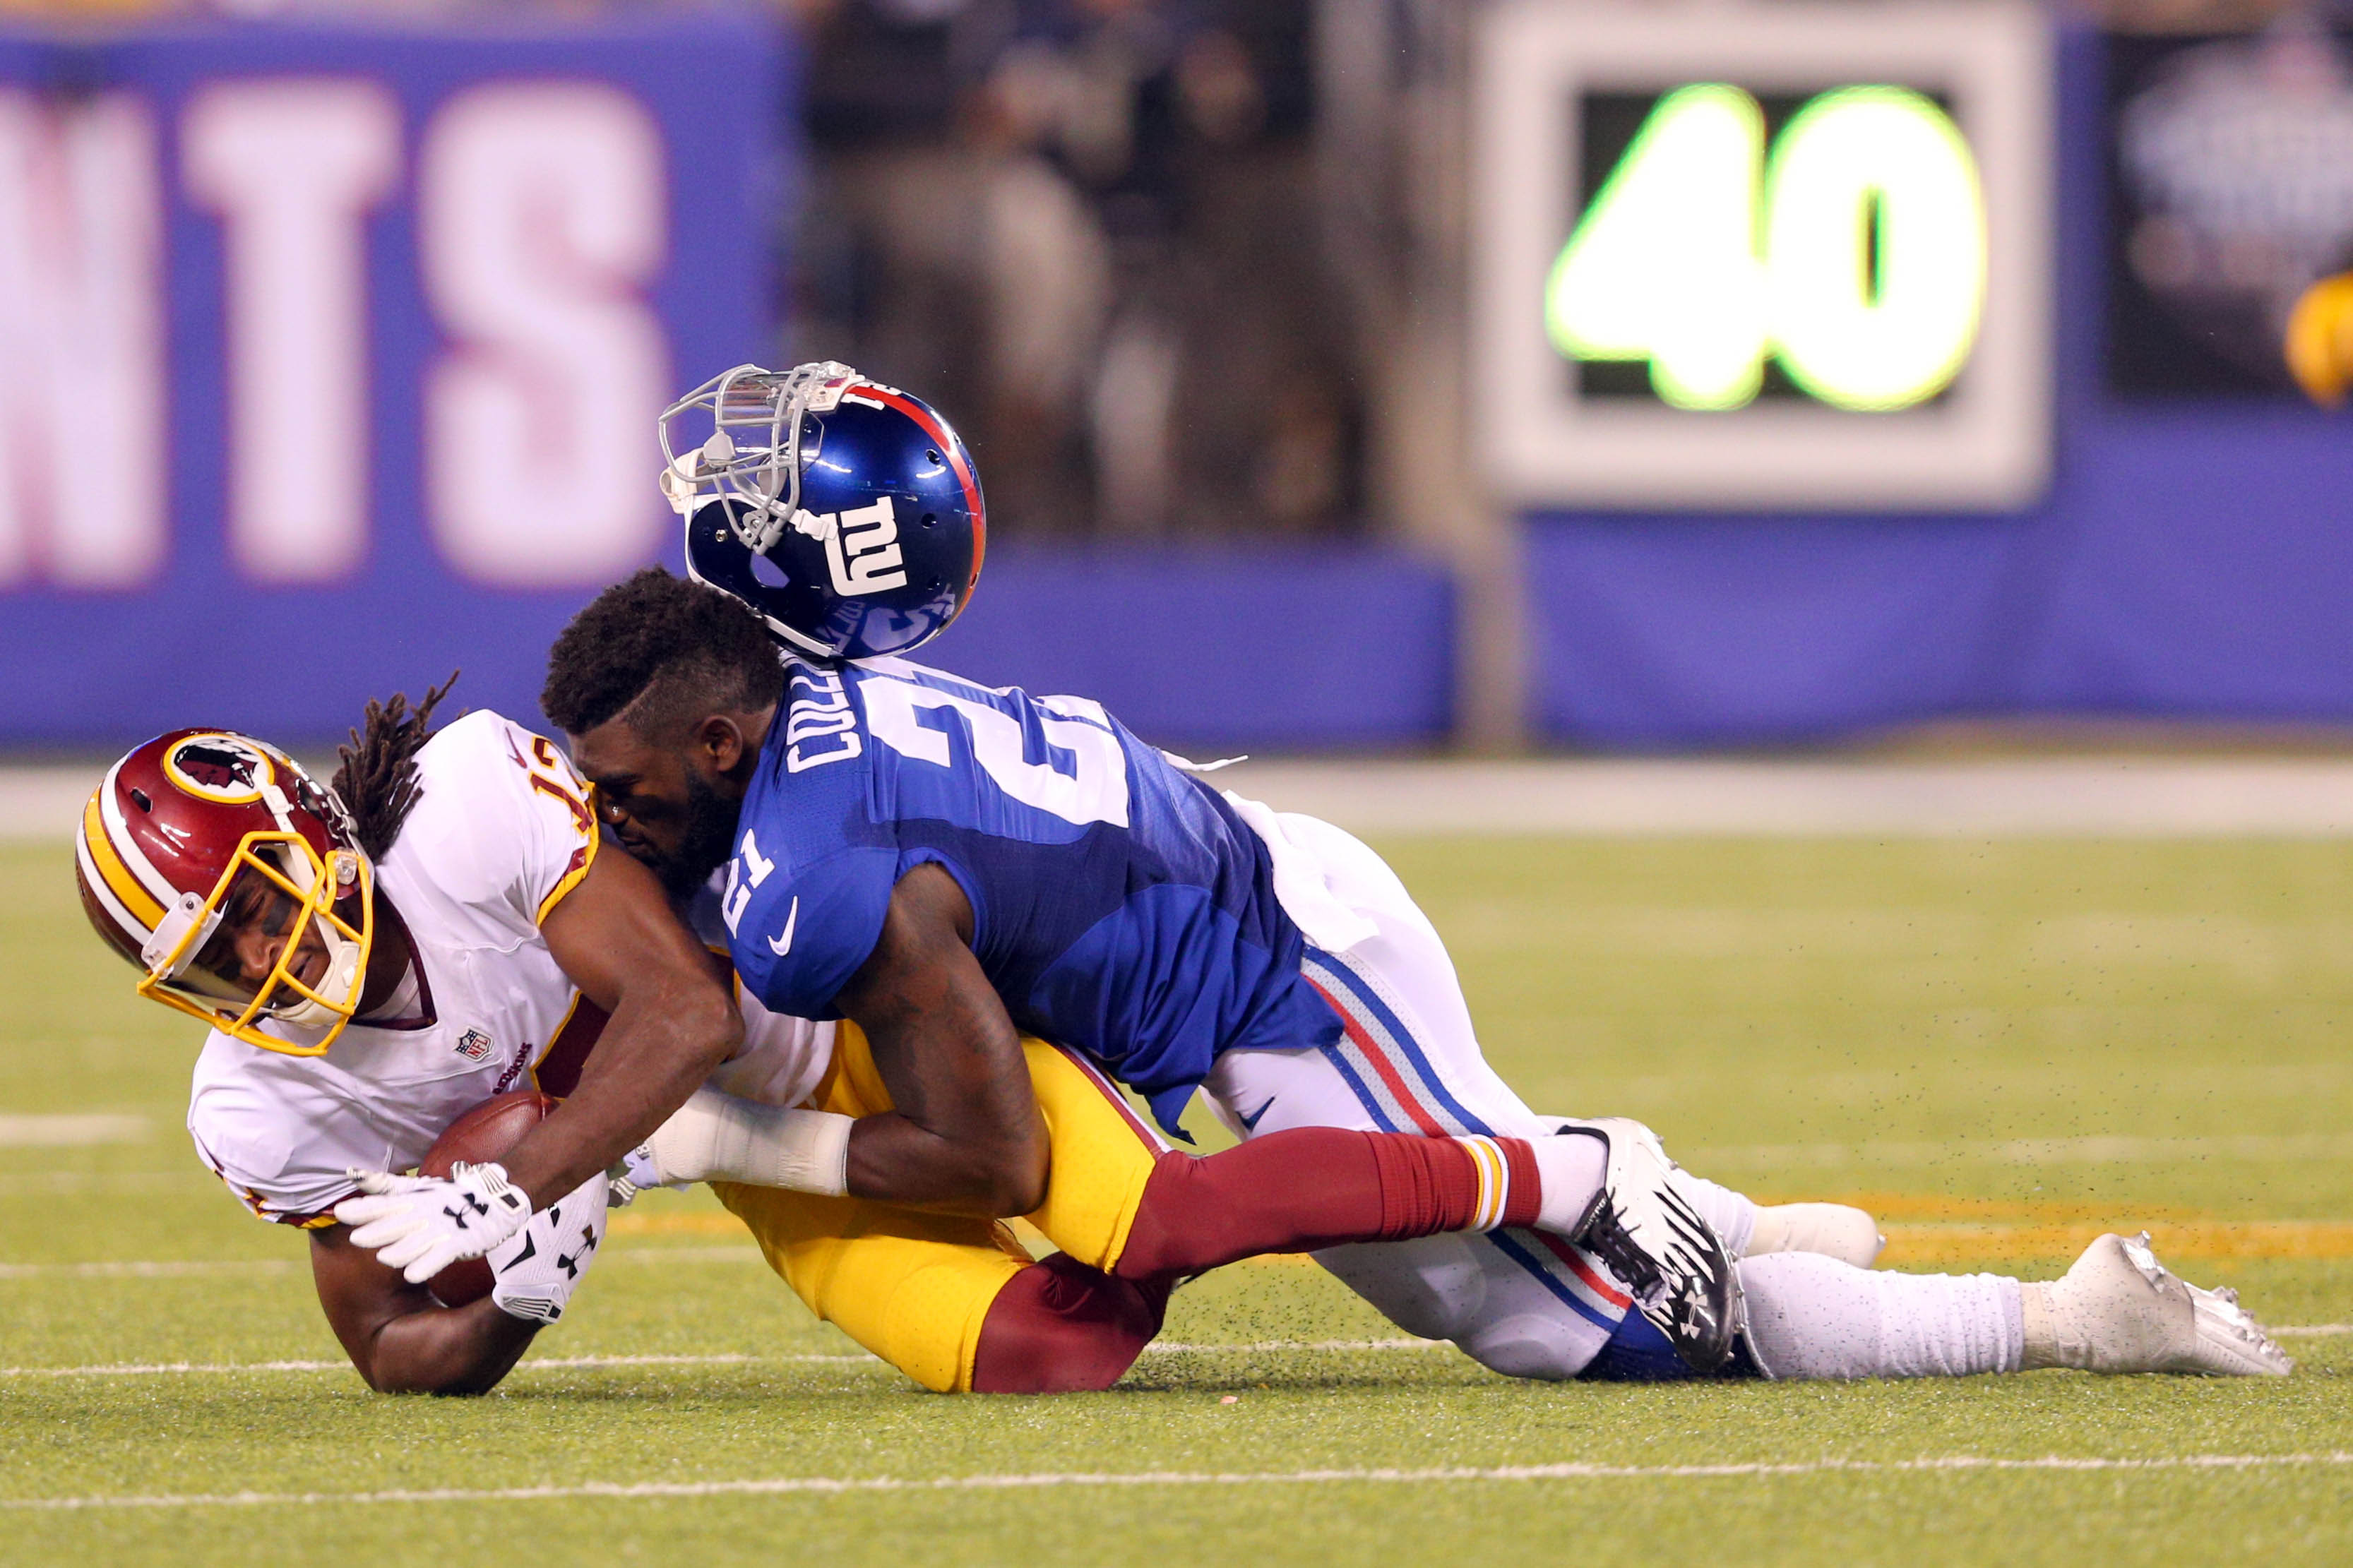 Can Landon Collins and the Giants flatten the Bills?